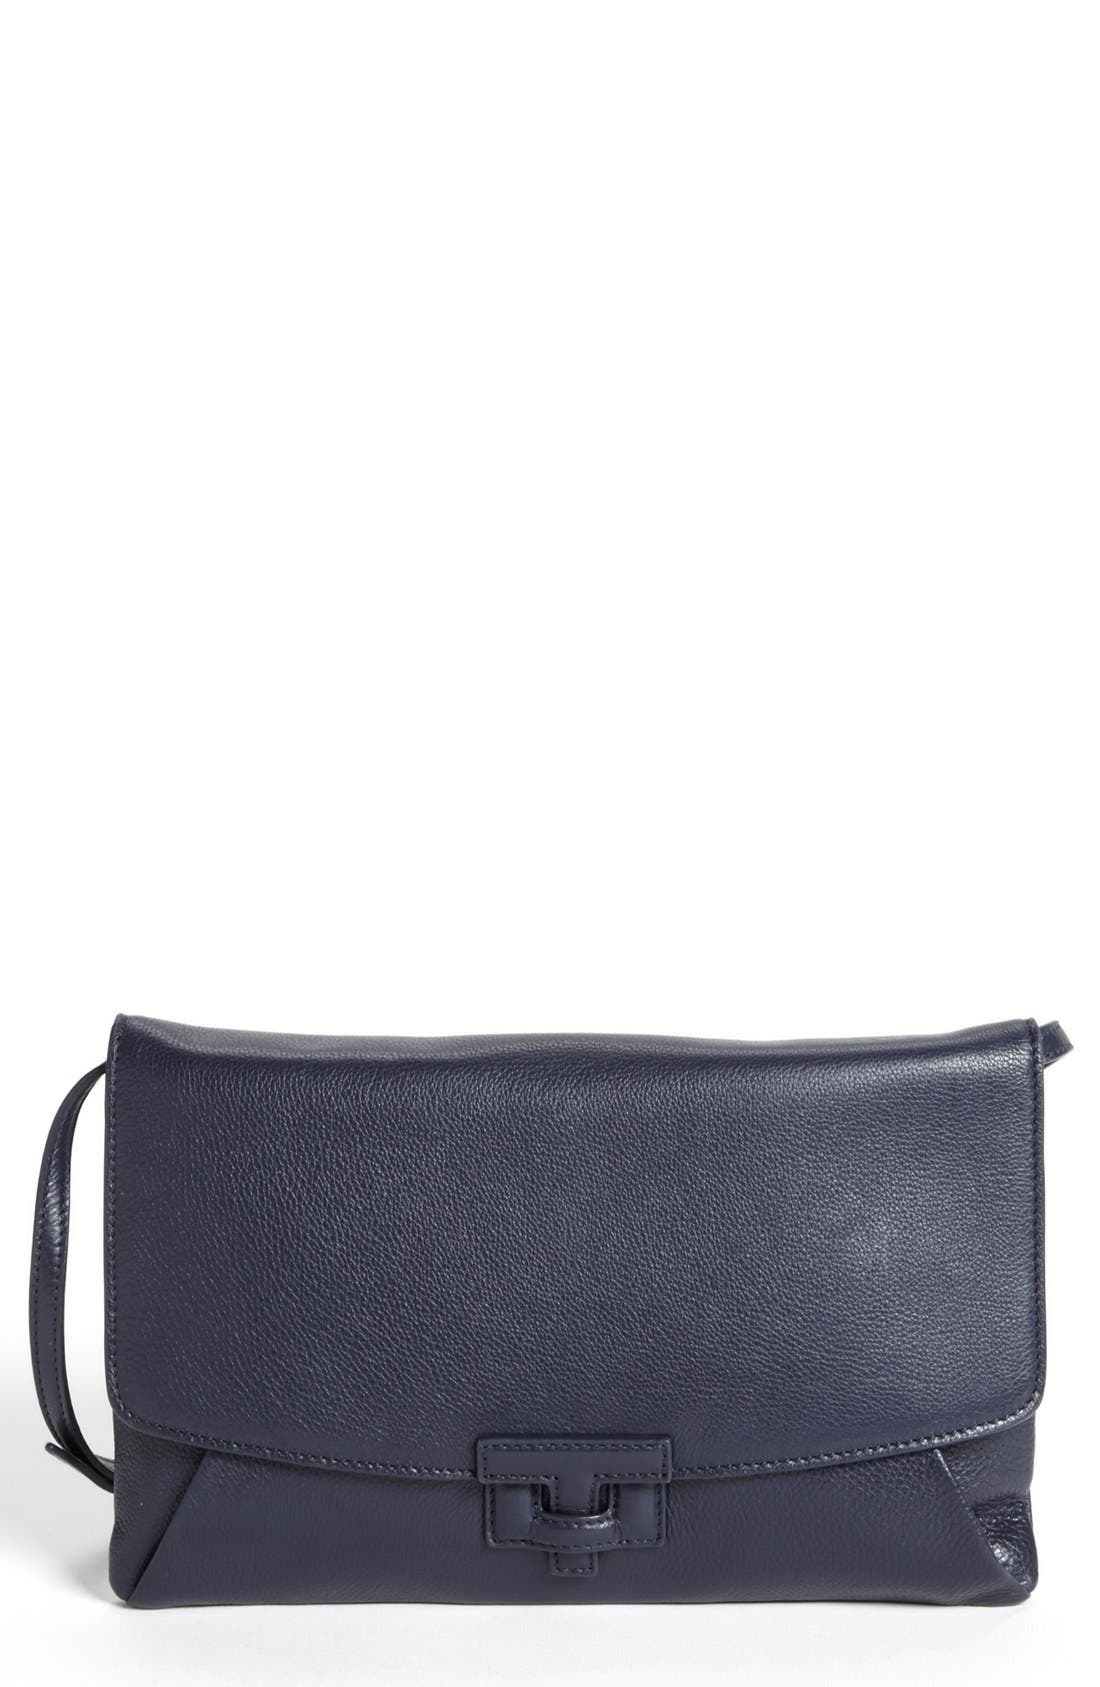 Alternate Image 1 Selected - Tory Burch Leather Envelope Clutch